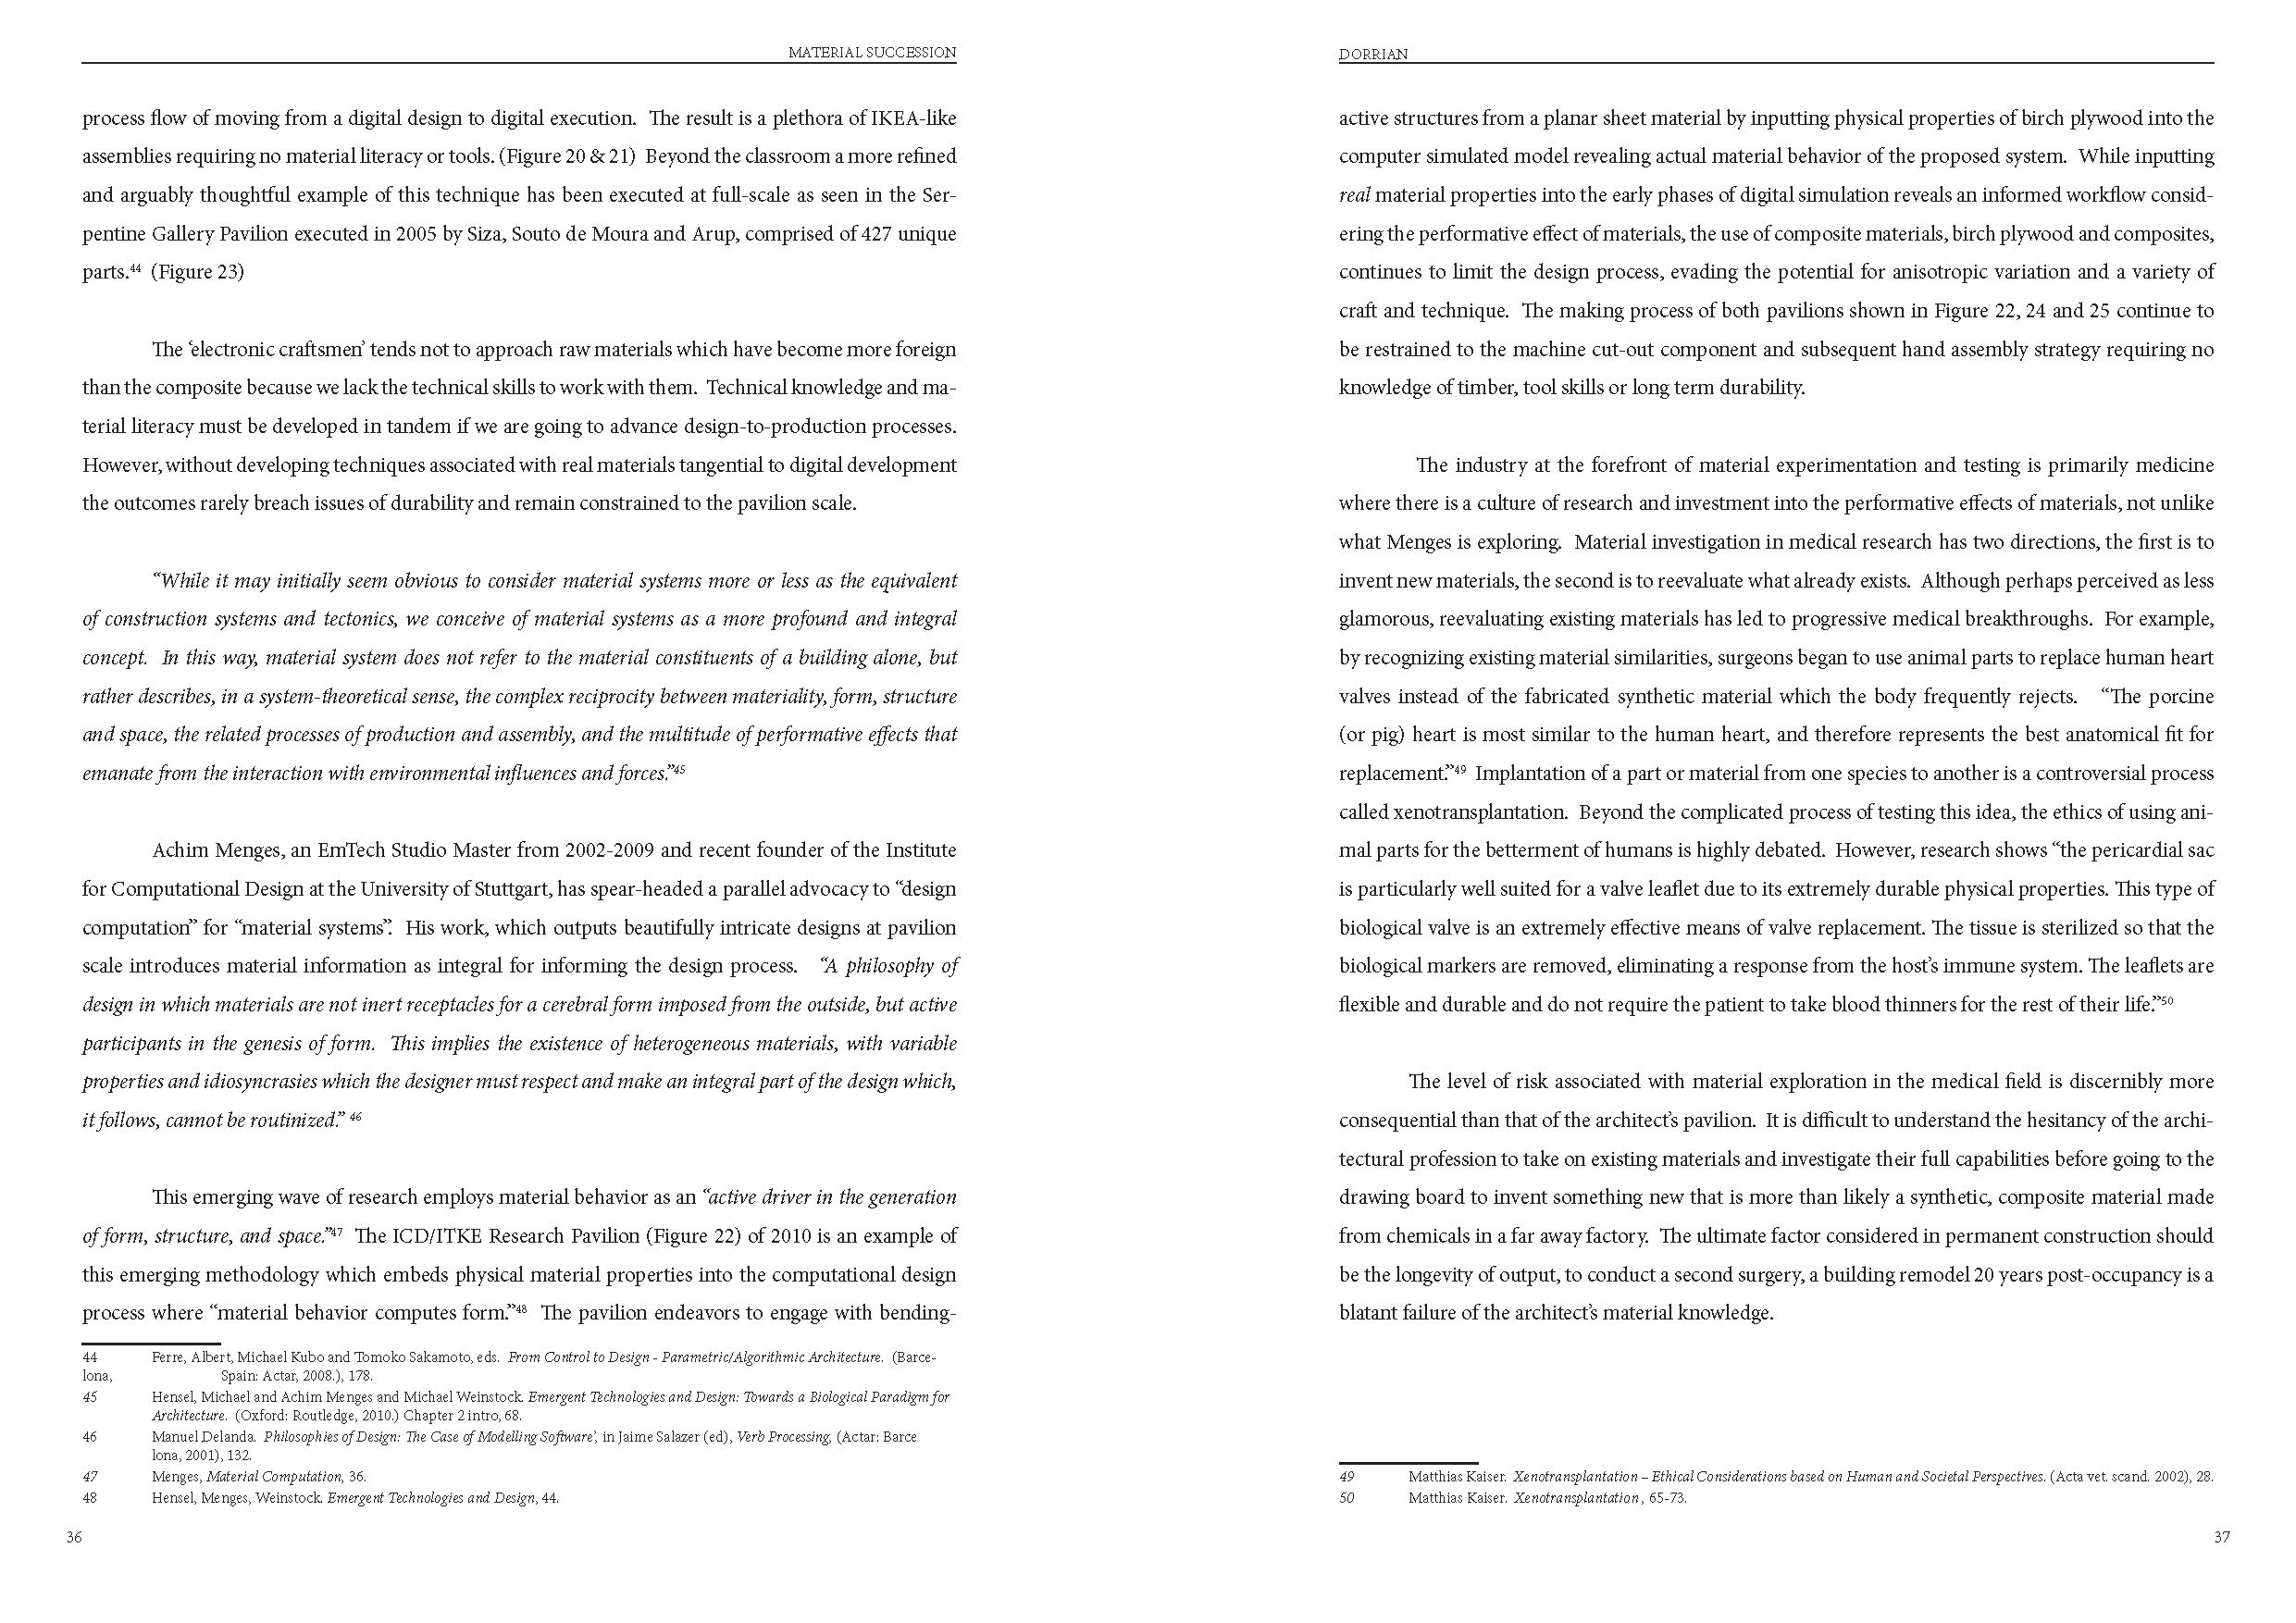 130131_Material SuccessionFORSUBMITTAL_Page_23.jpg